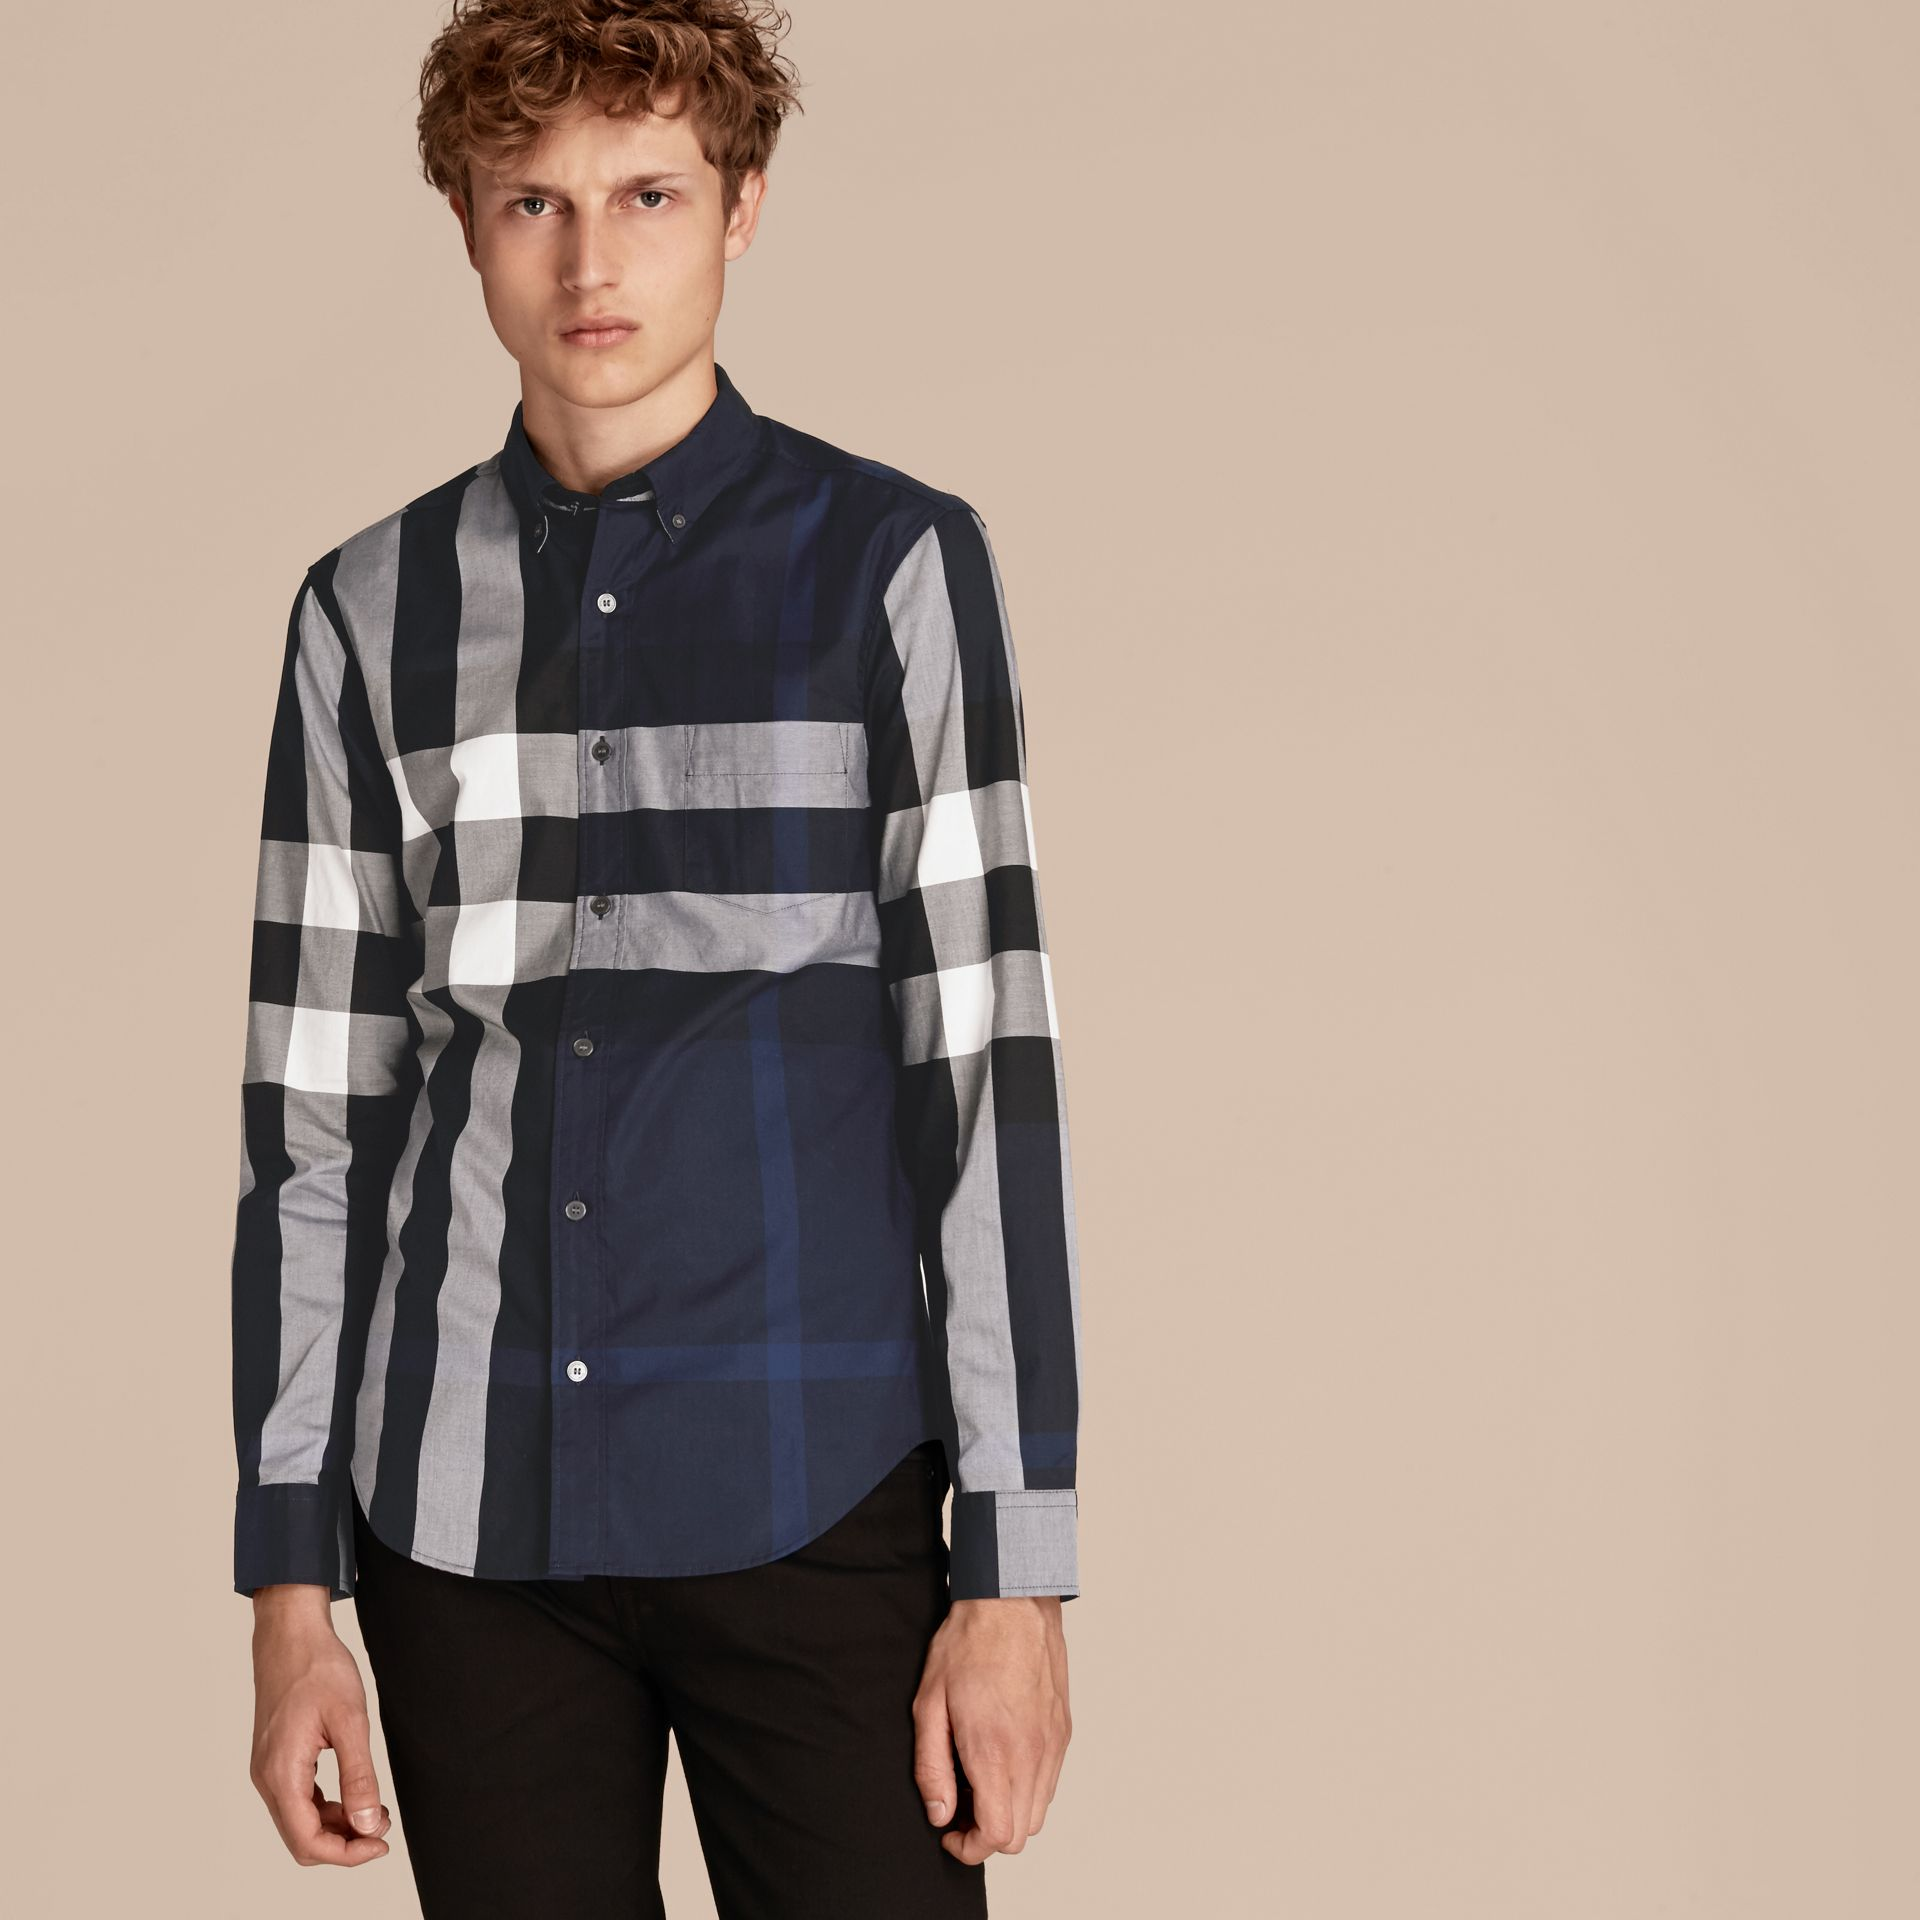 Indigo blue Check Cotton Shirt Indigo Blue - gallery image 6